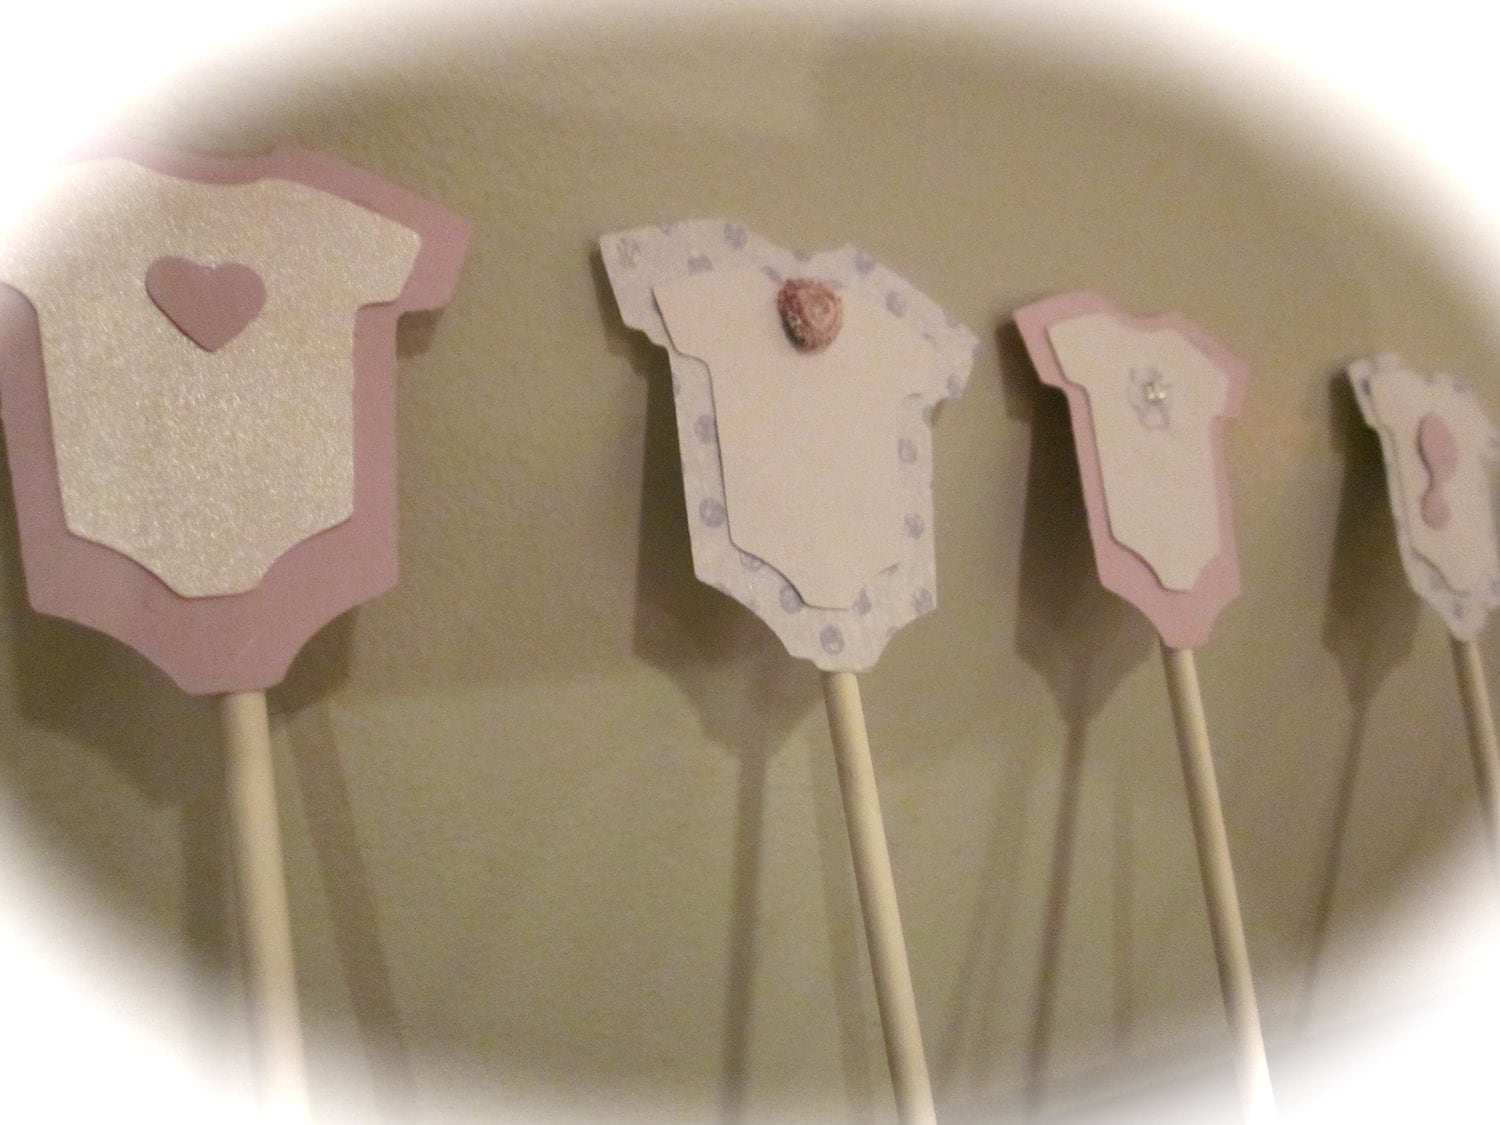 Popular items for baby carriage stroller on Etsy